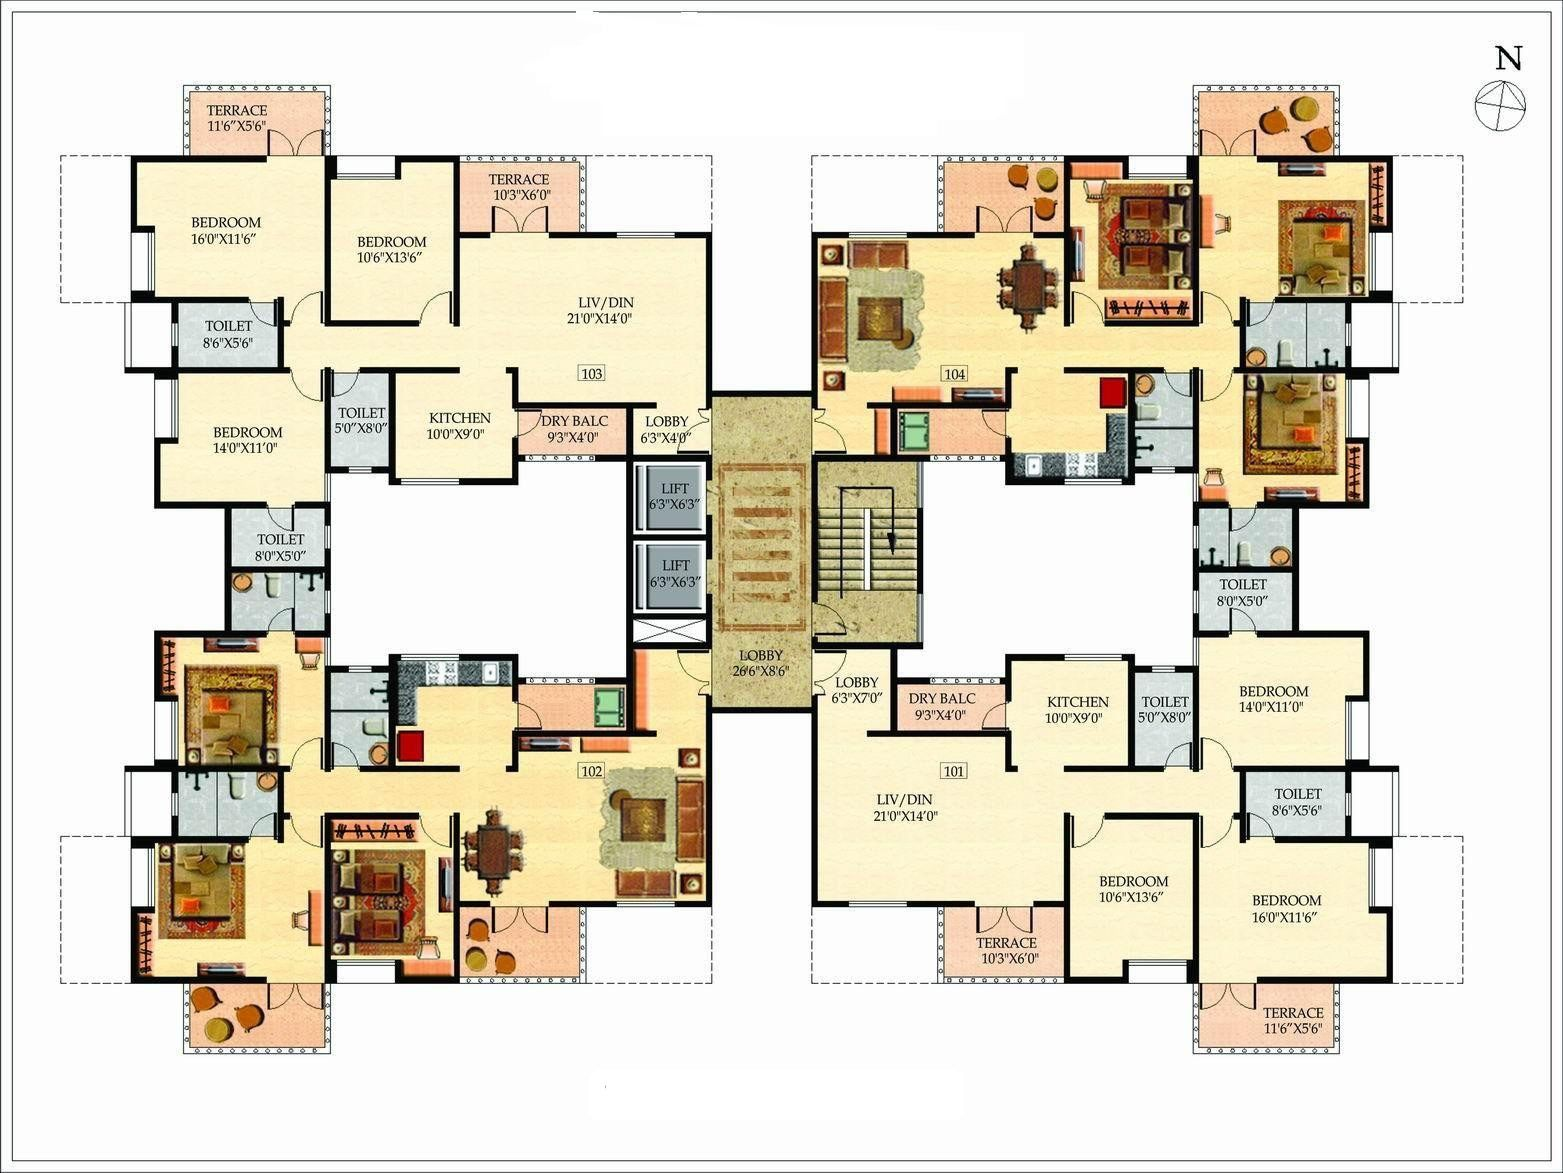 6 bedroom mansion floor plans design ideas 2017 2018 pinterest mansion bedrooms and Modern home plans 2015